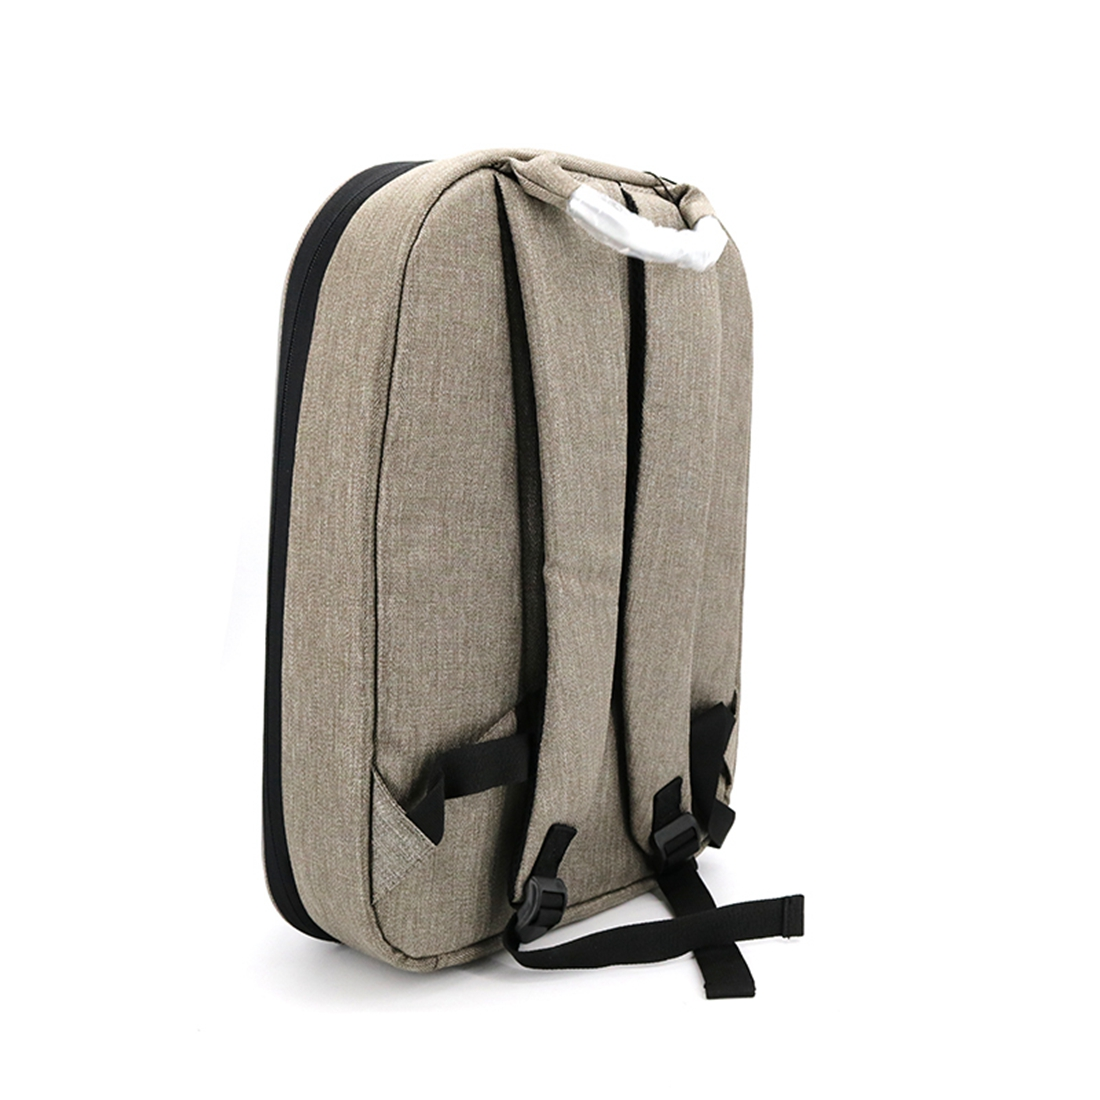 ARESLAND New Waterproof HardShell Backpack Case Bag Sticker Battery Charger Storage Bag For DJI Mavic Pro Accessories Beige waterproof spark bag box case accessories for dji spark drone storage bag carry case